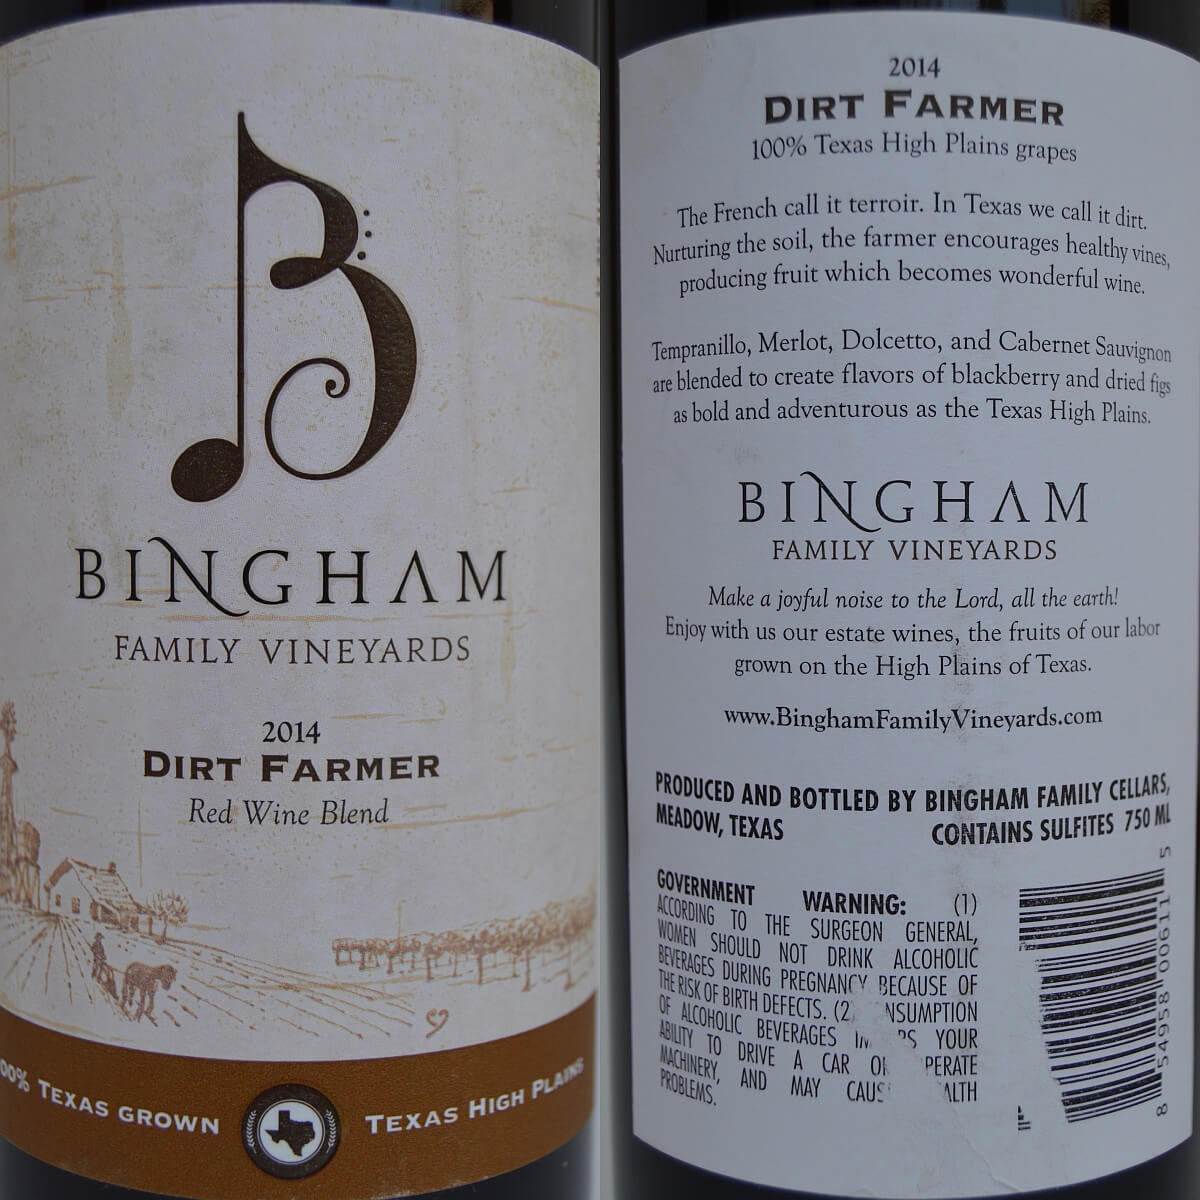 Bingham Dirt Farmer labels